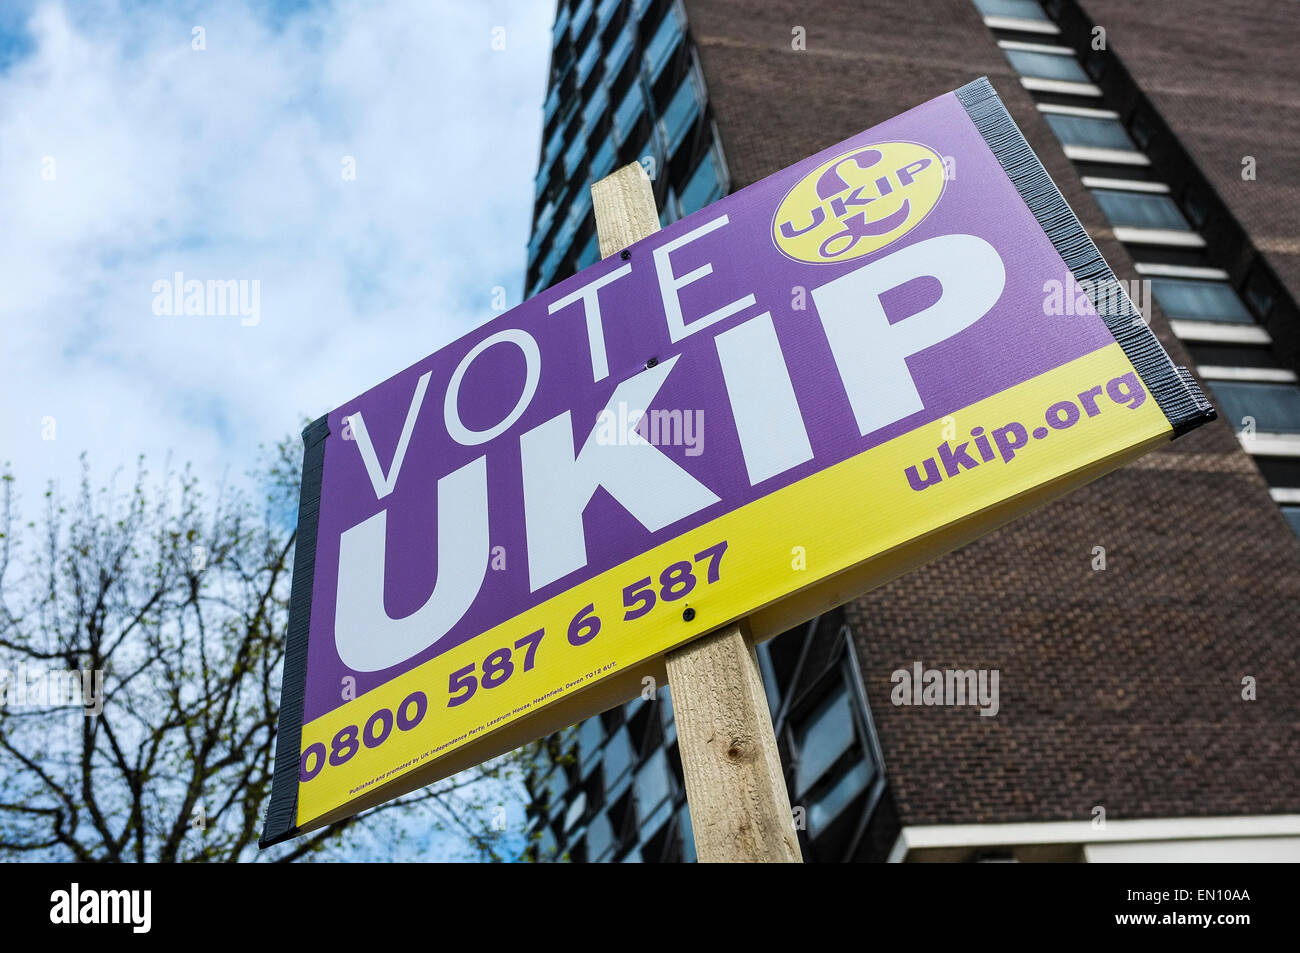 Basildon, UK. 25th Apr, 2015. Saturday 25th April, 2015.  Basildon.  Members of UKIP in Basildon Town - Stock Image